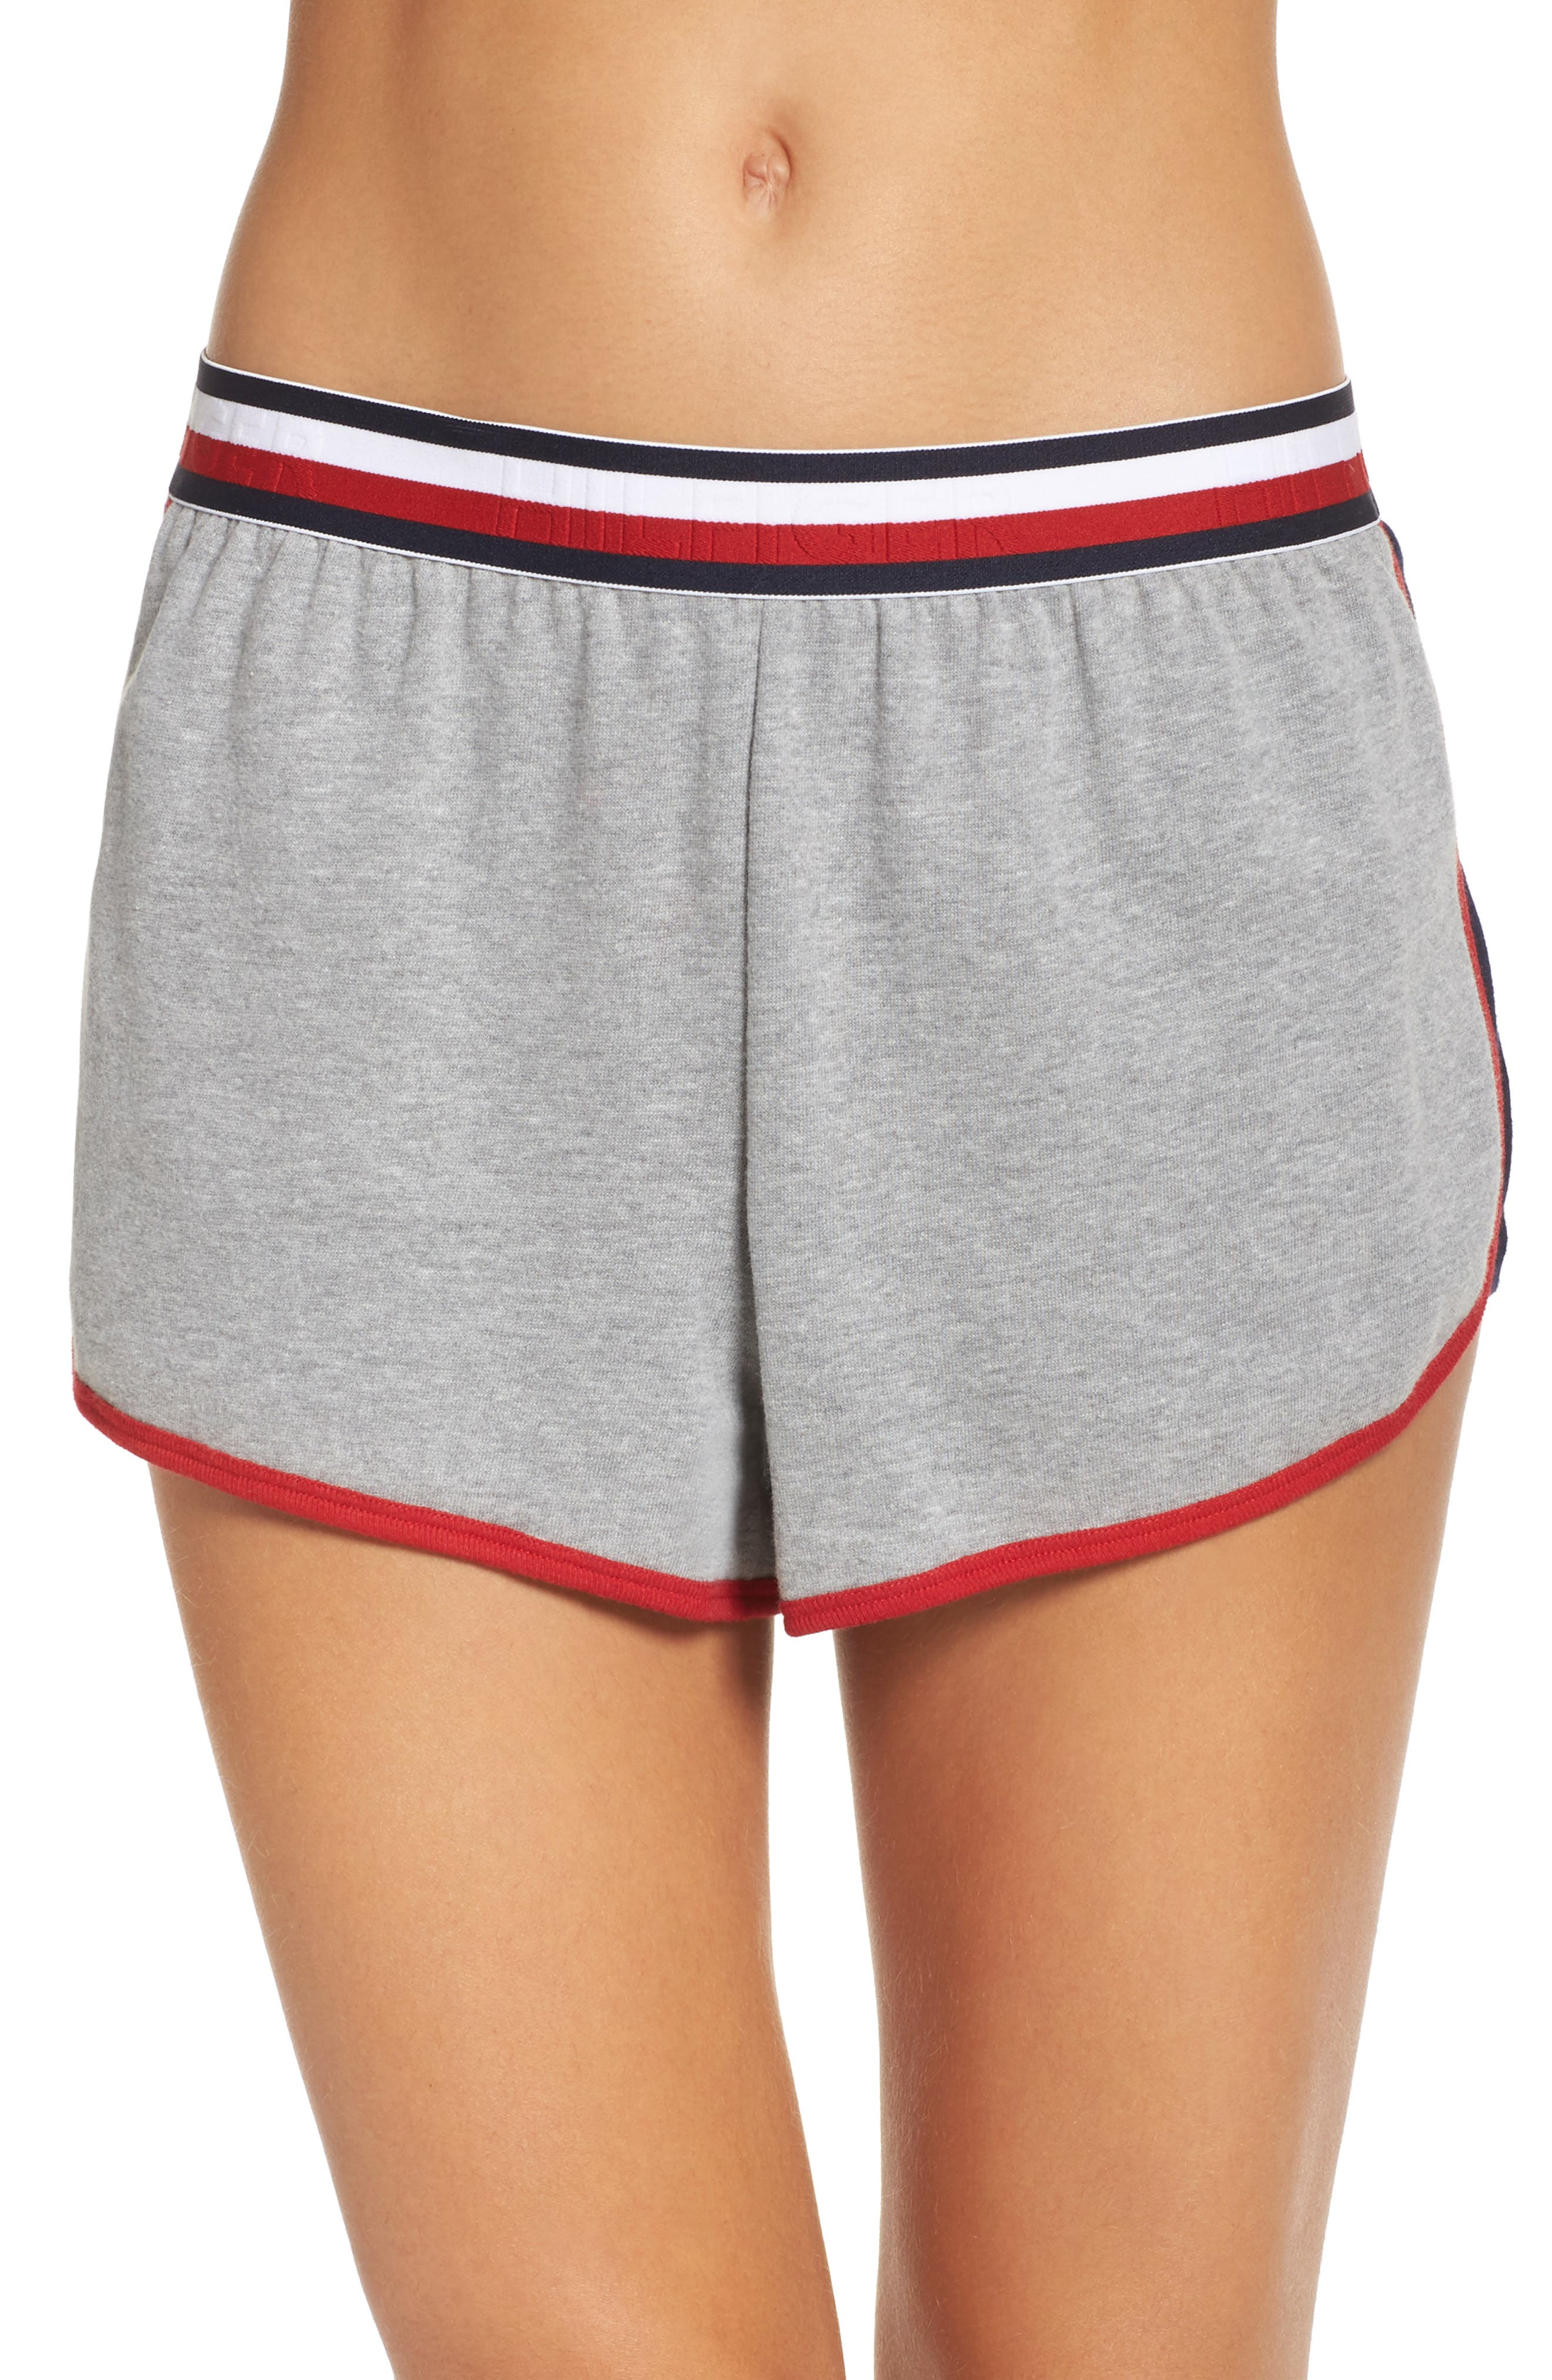 Lounge Shorts,                         Main,                         color, 020